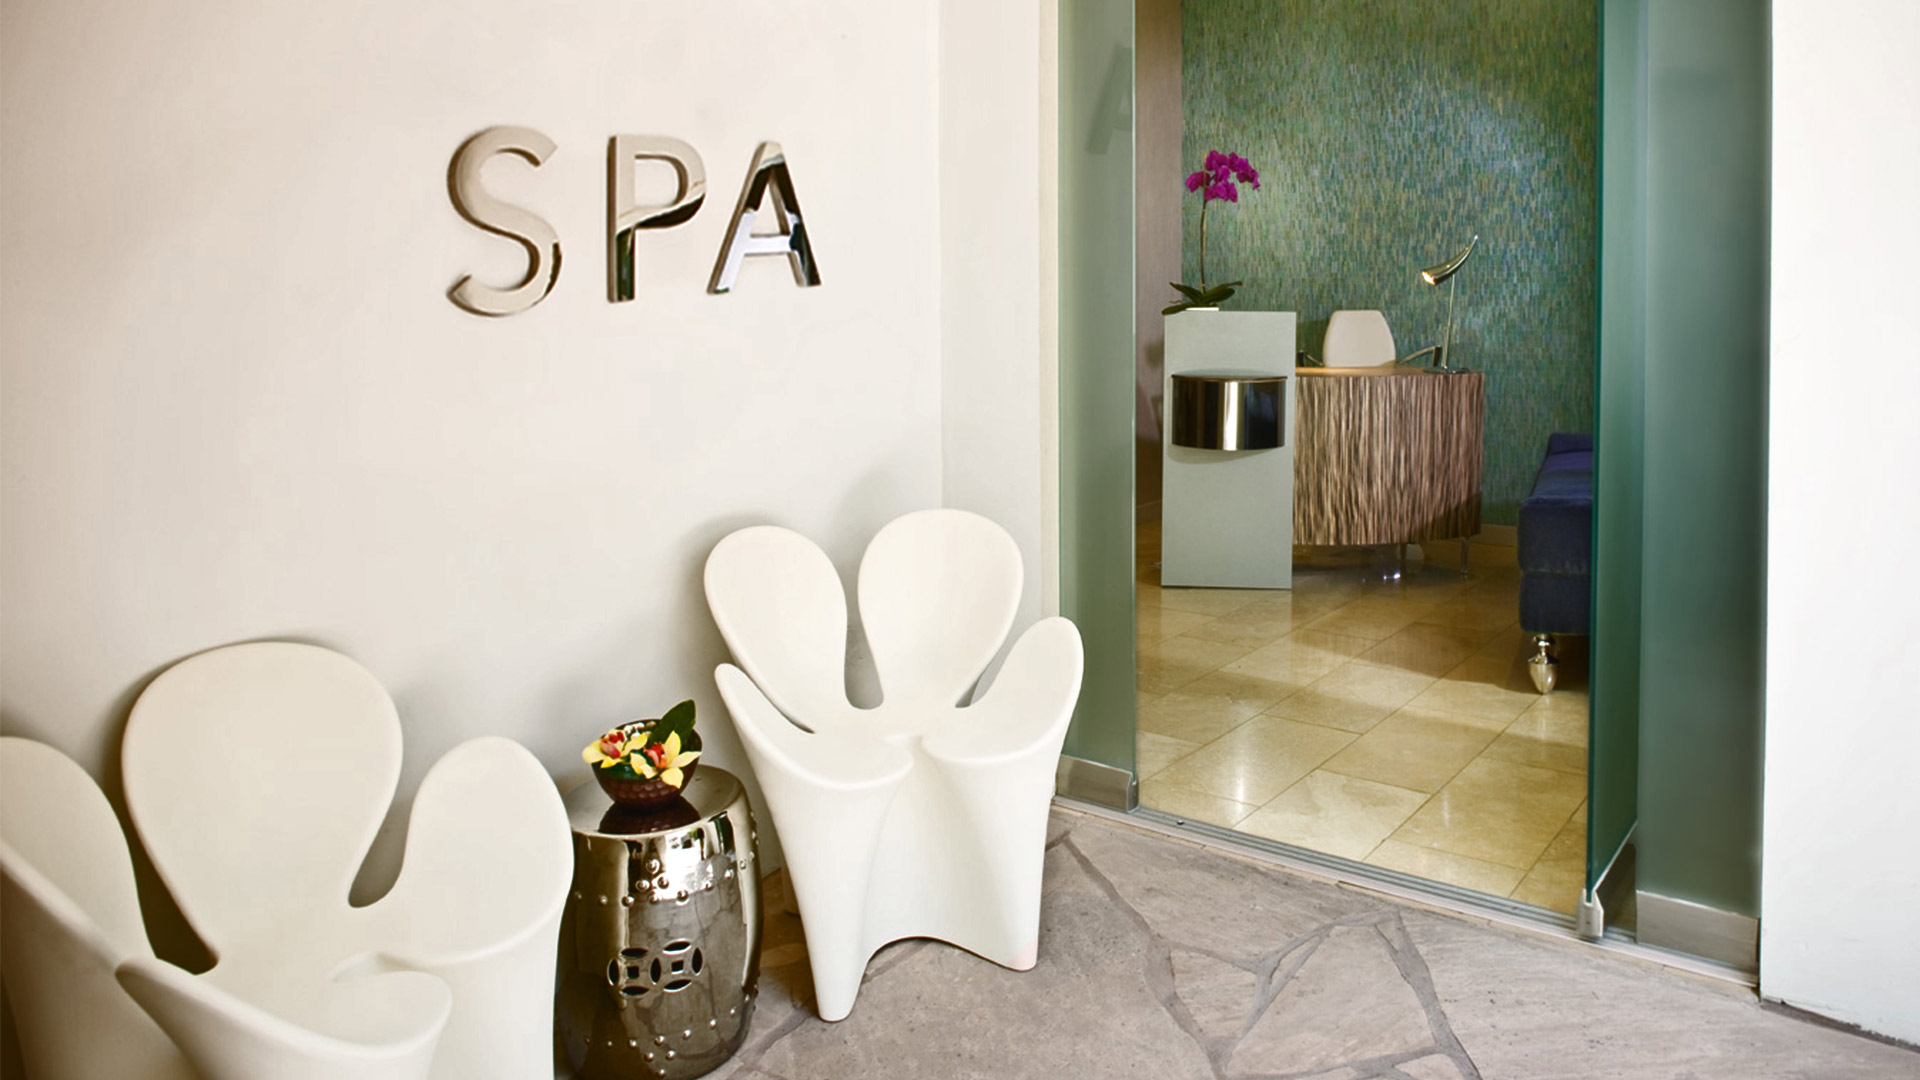 Nothing like a Spa for the Holiday